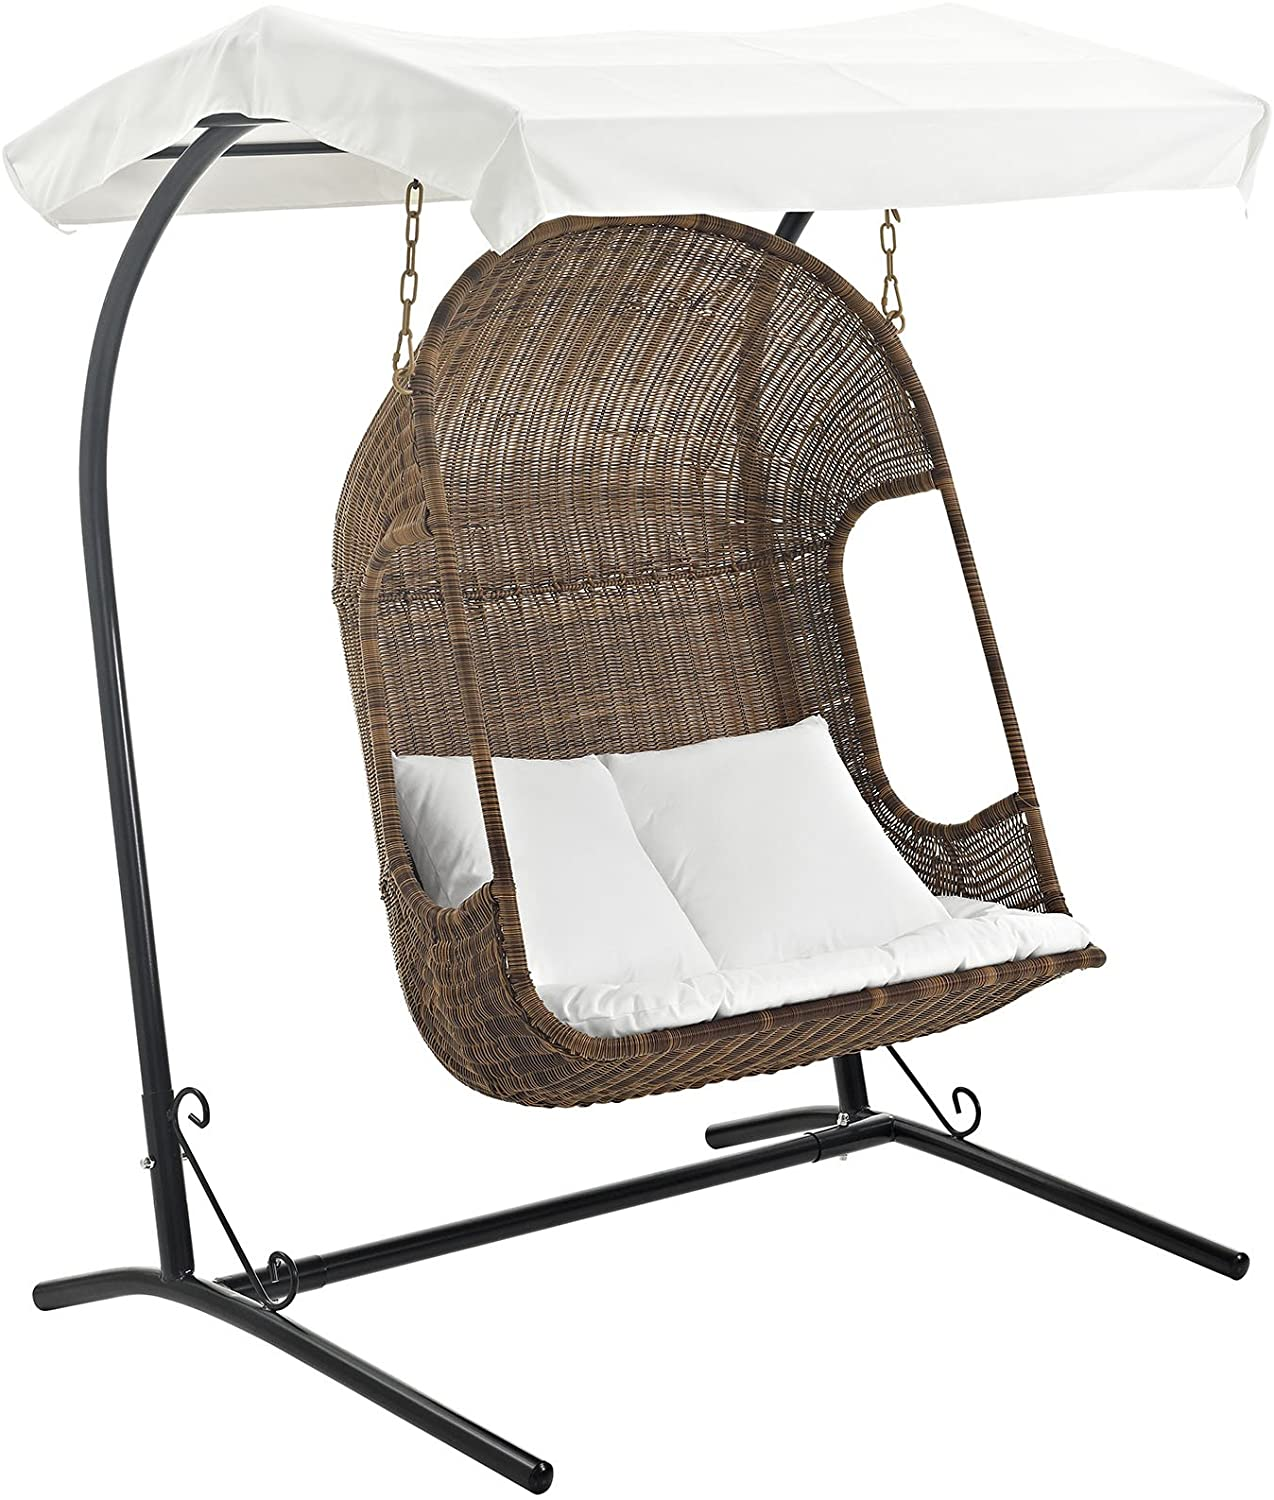 Top 10 hanging chairs for houses and gardens 2020 13